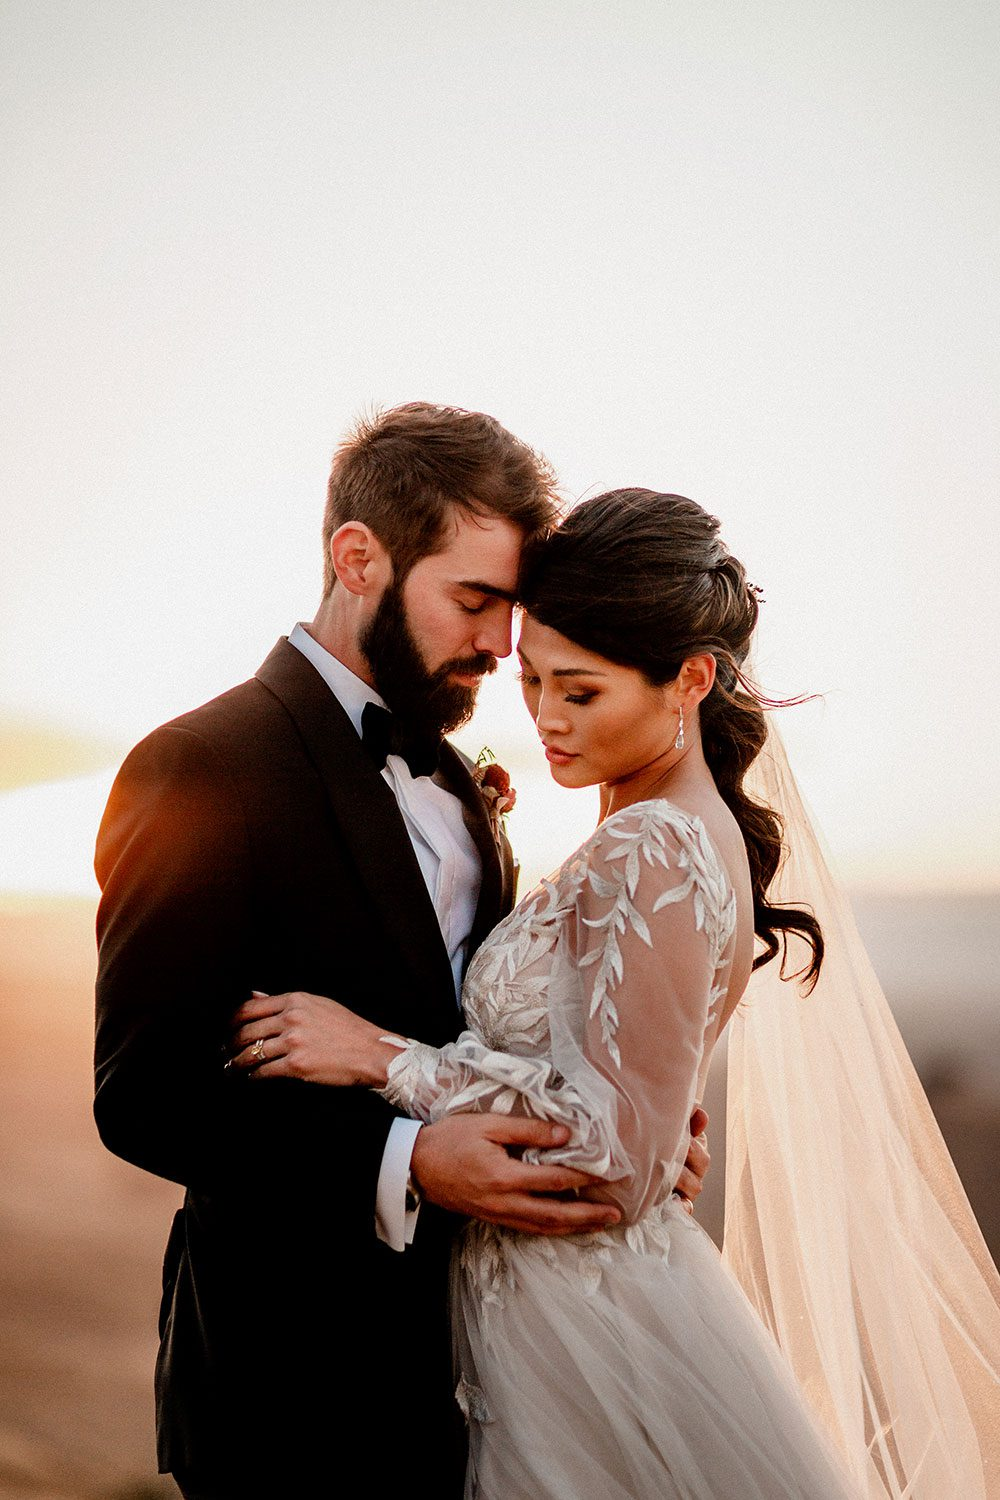 Bride wearing bespoke designer wedding dress by Vinka Bridal Boutique NZ, adorned with delicate applique lace and puffed sleeves- close profile